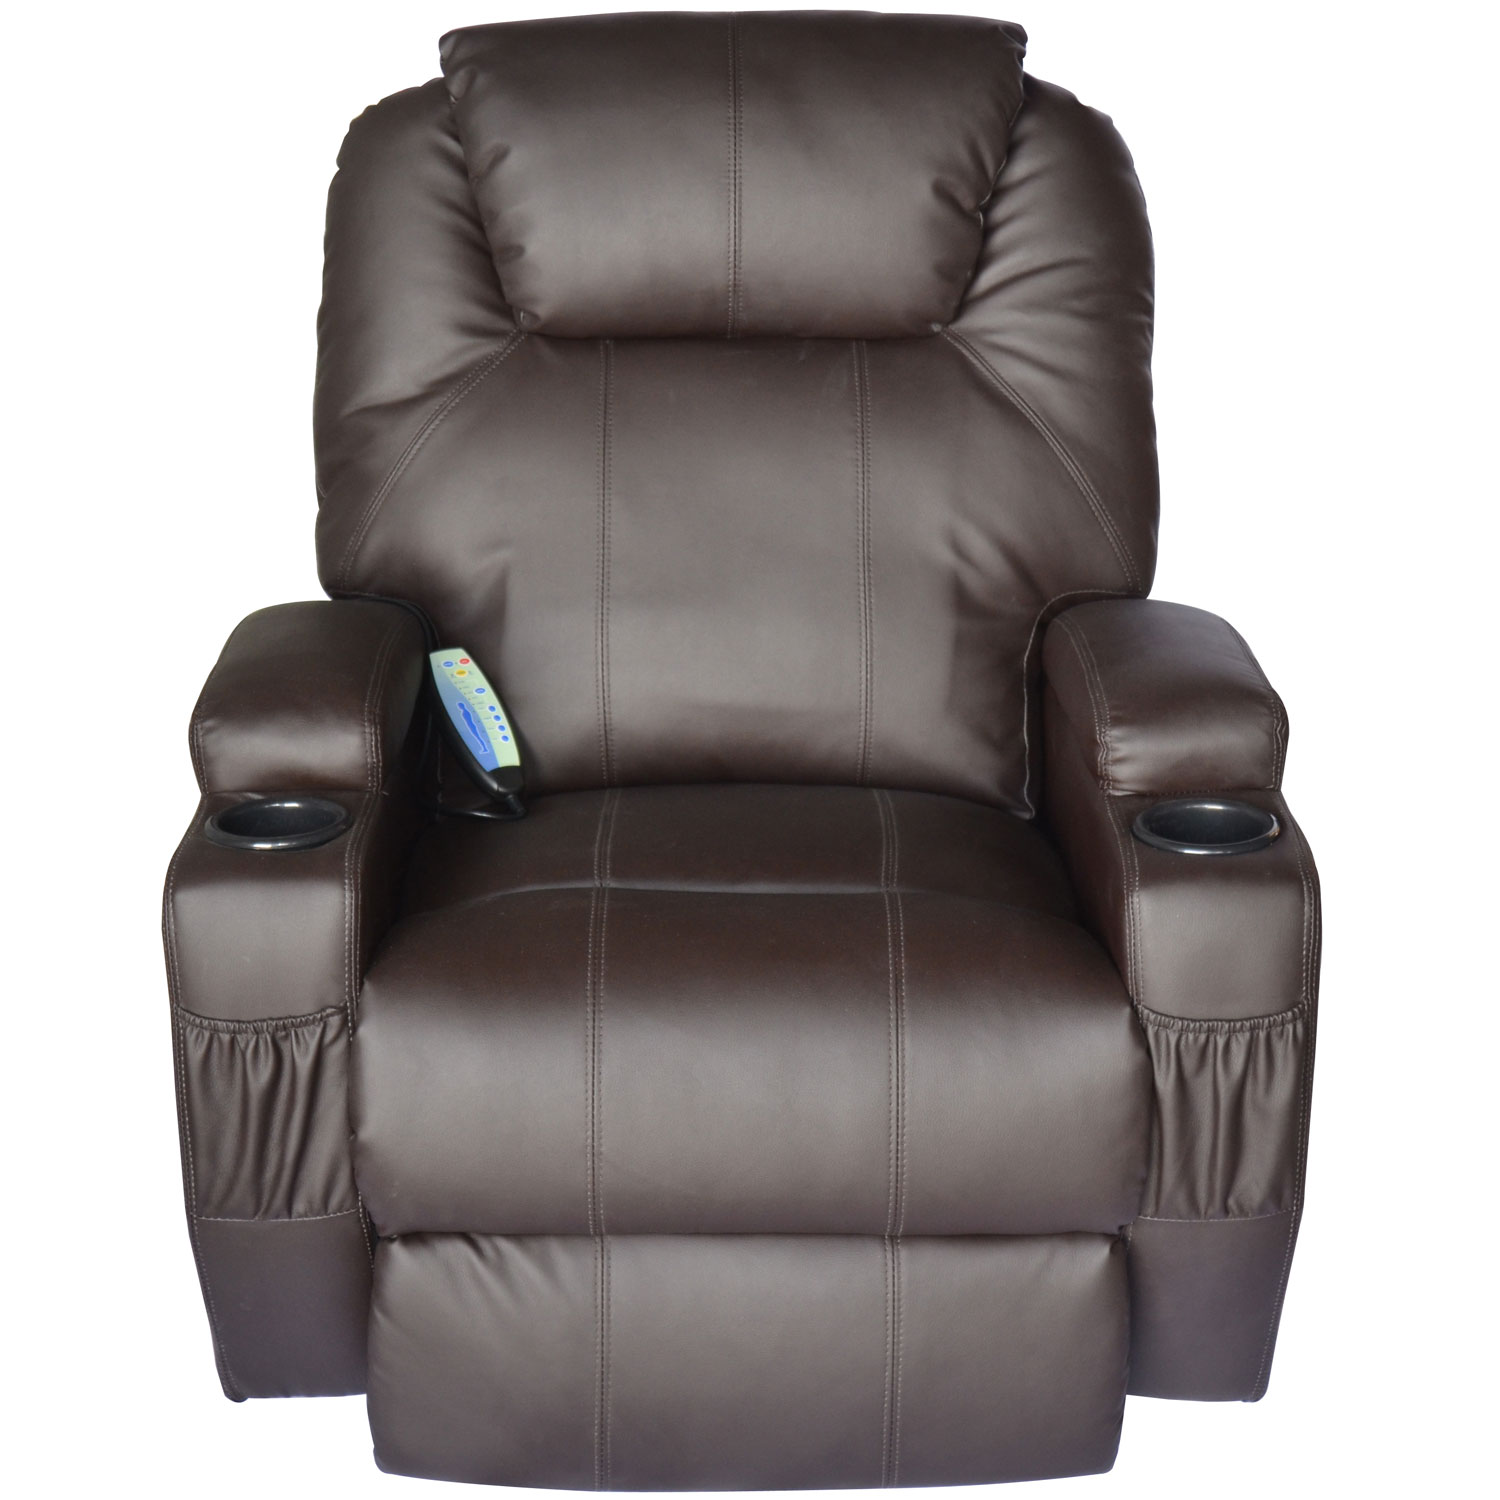 Hom Deluxe Heated Vibrating PU Leather Massage Recliner Chair